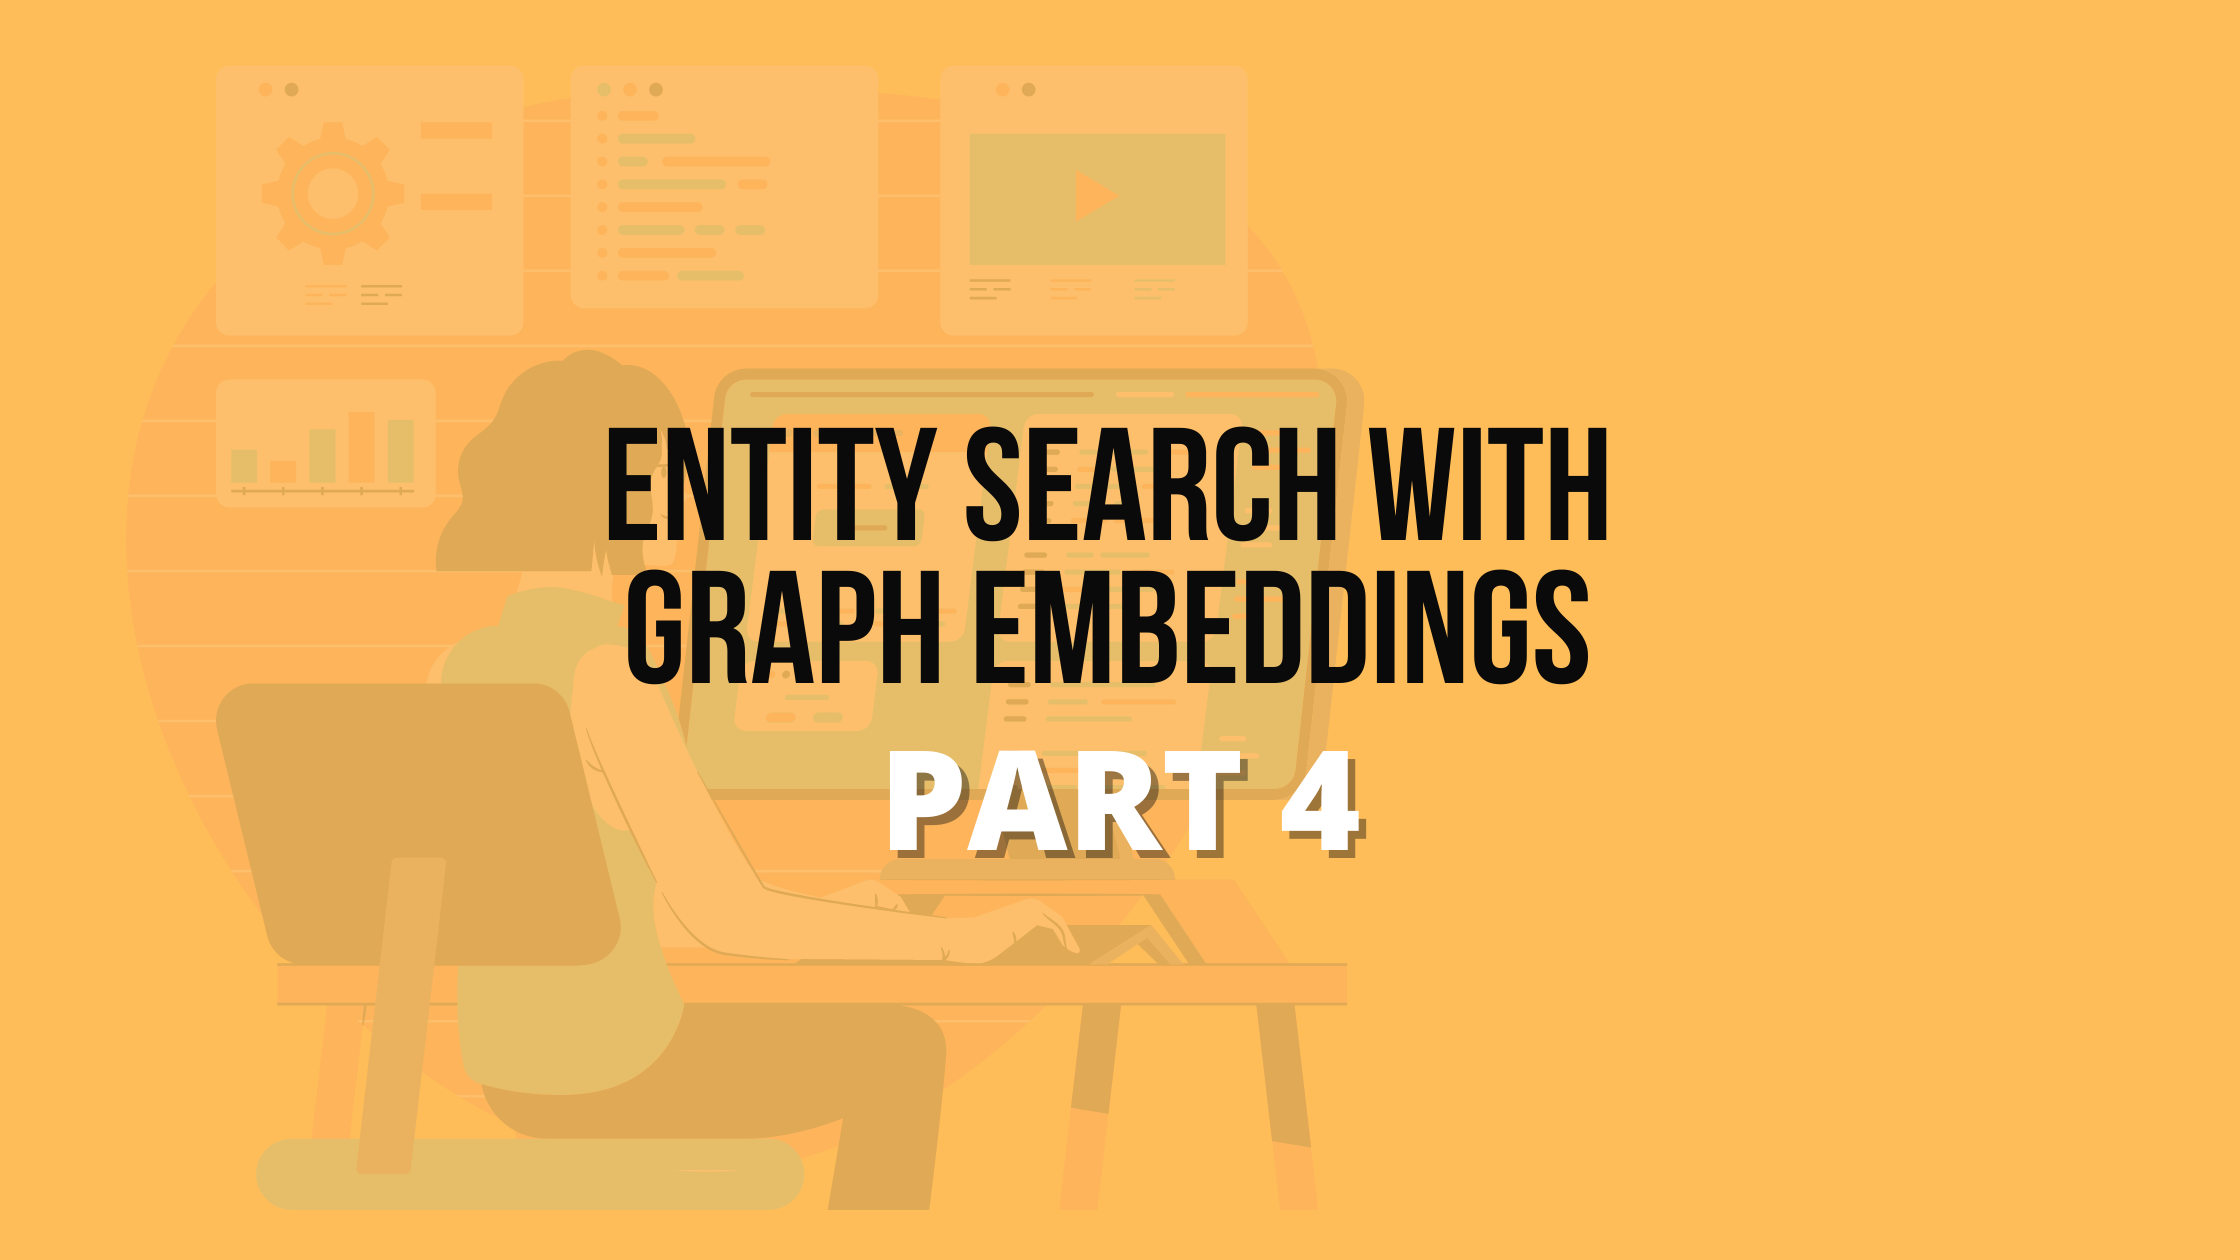 Entity Search with Graph Embeddings 4